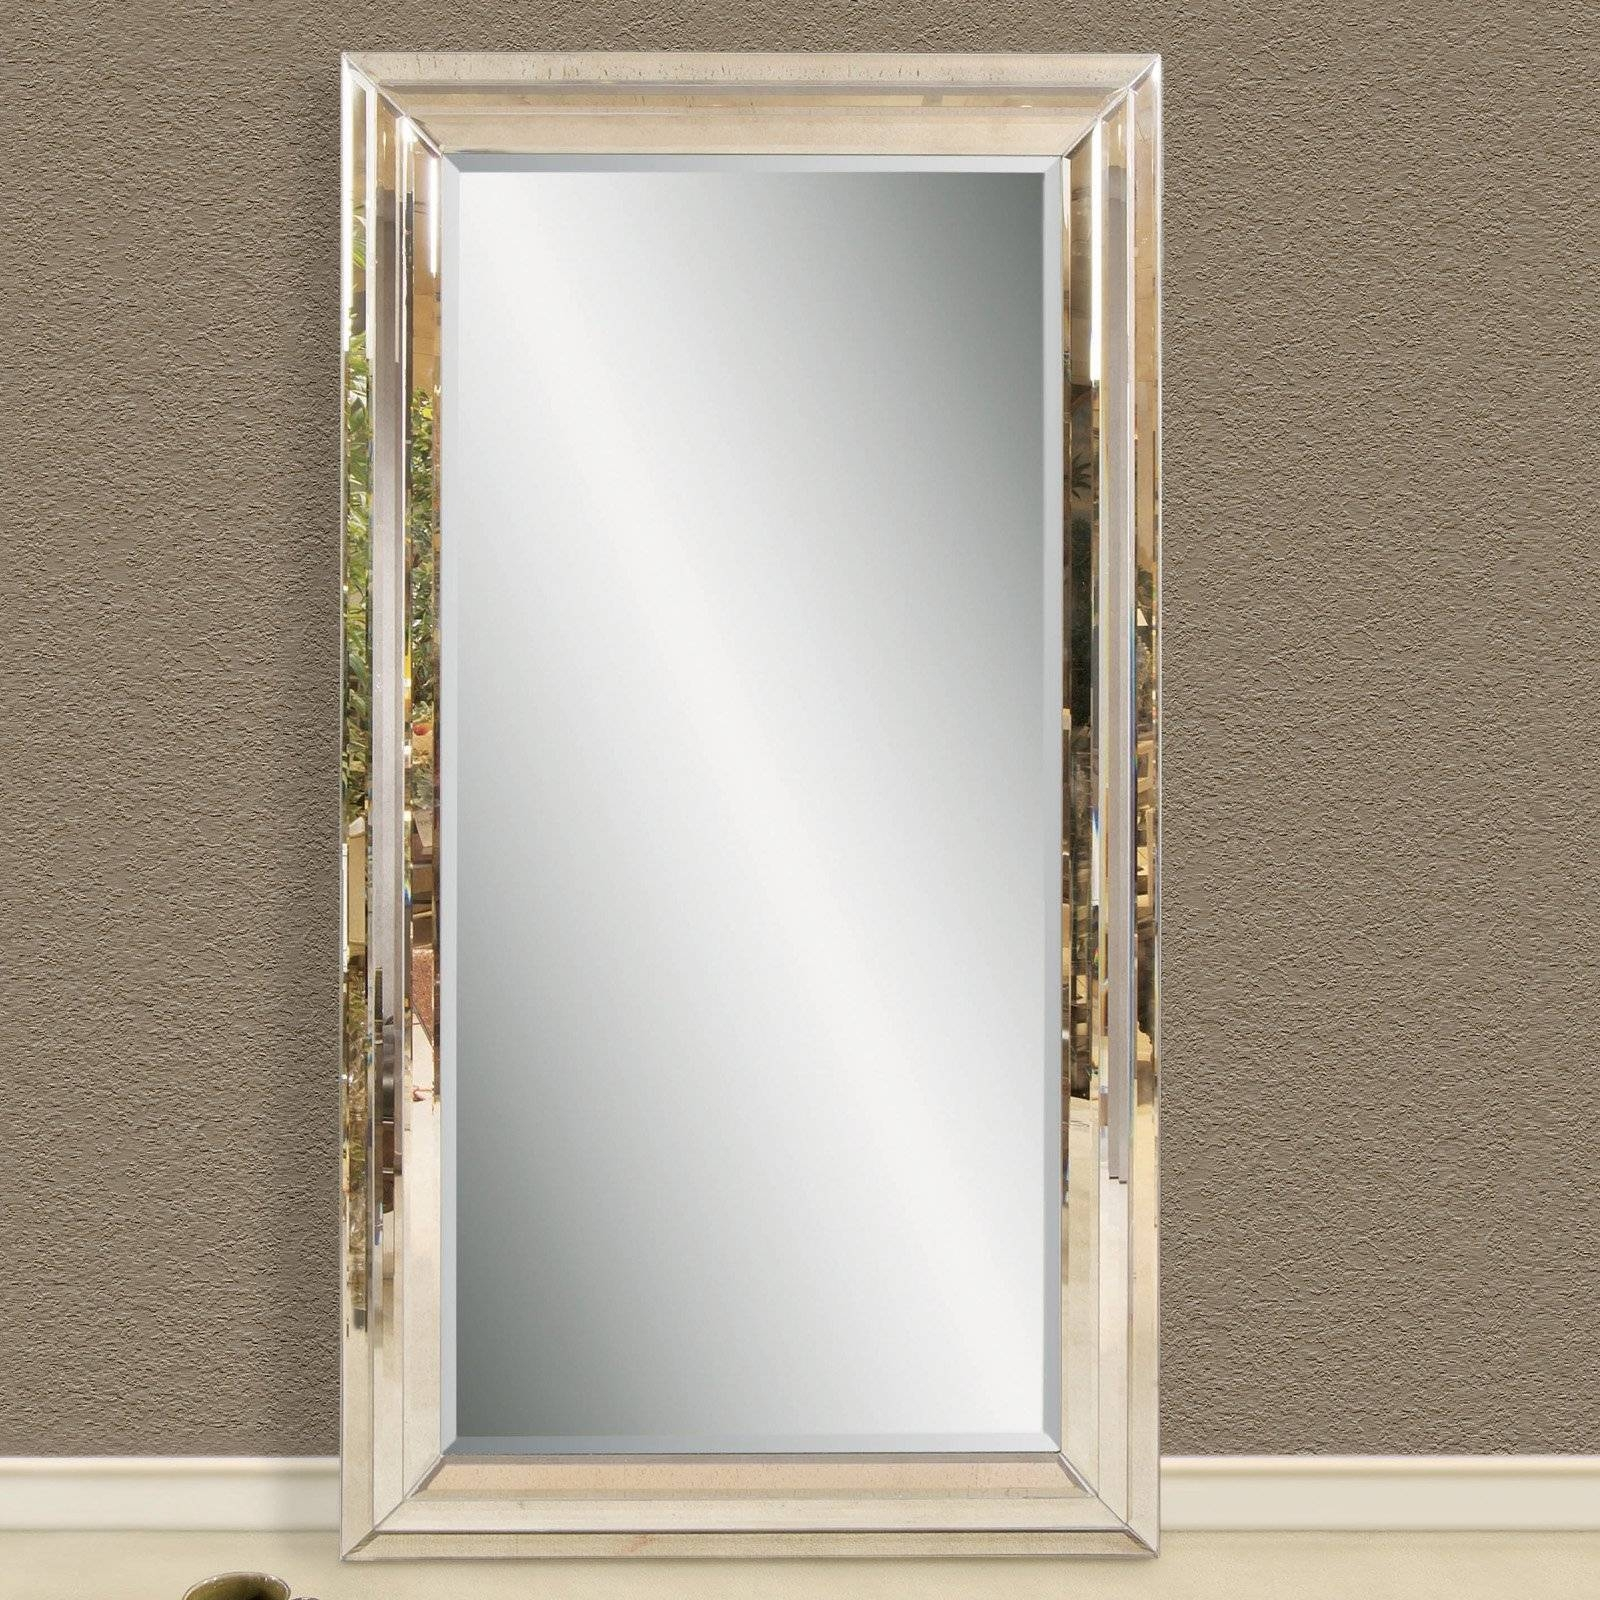 Cheap Big Mirrors Uk | Vanity Decoration throughout Cheap Mirrors (Image 5 of 15)